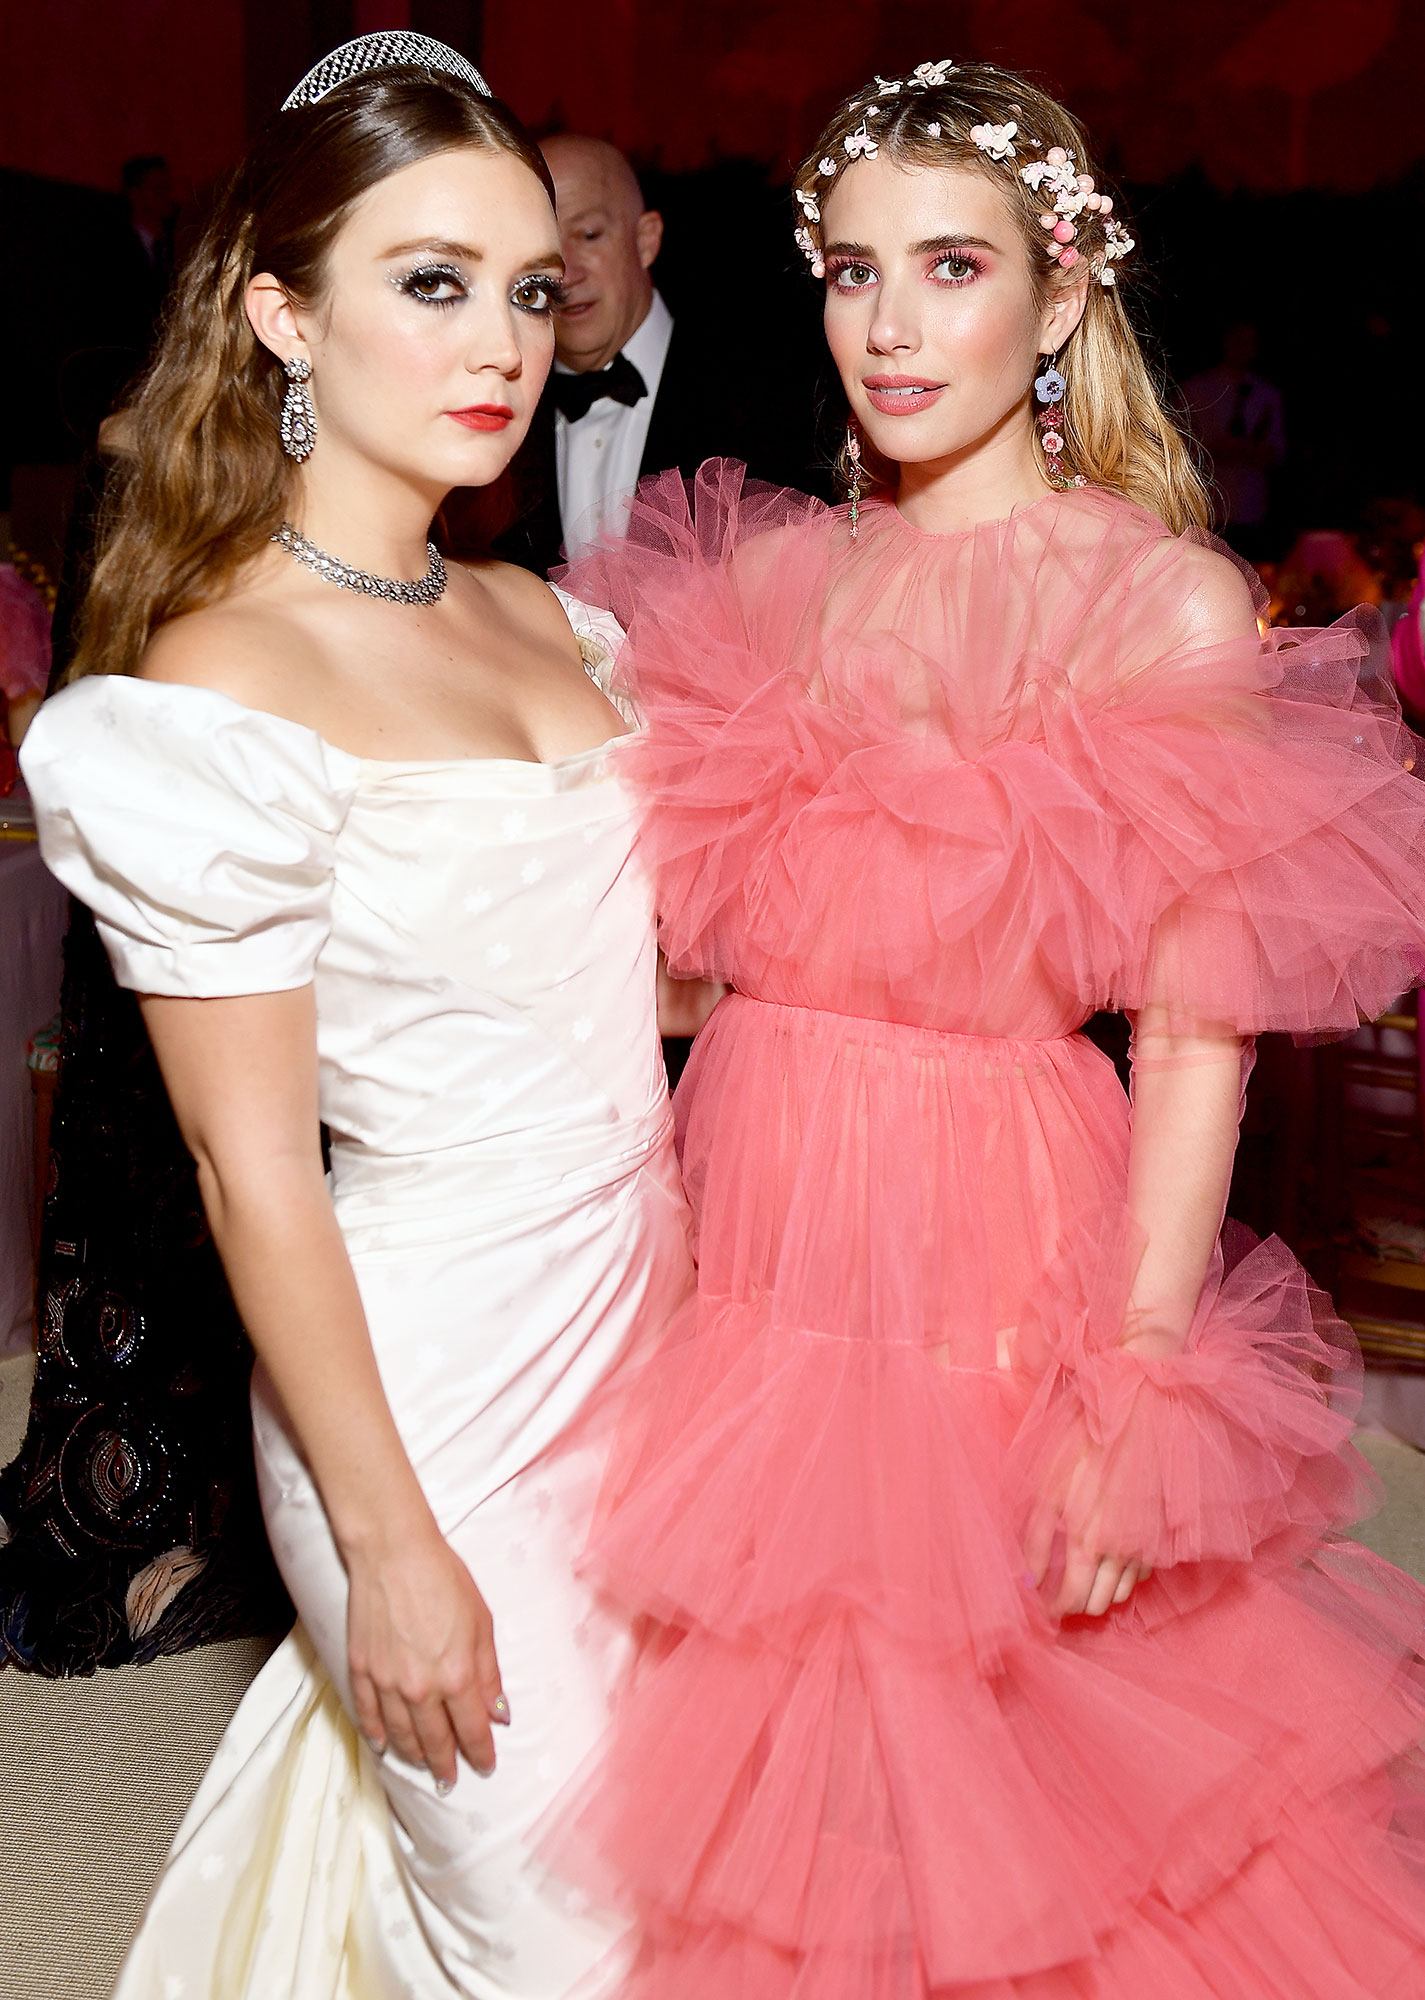 Met Gala 2019 What You Didnt See Billie Lourd Emma Roberts - Former Scream Queen costars Billie Lourd and Emma Roberts reunited inside the event.